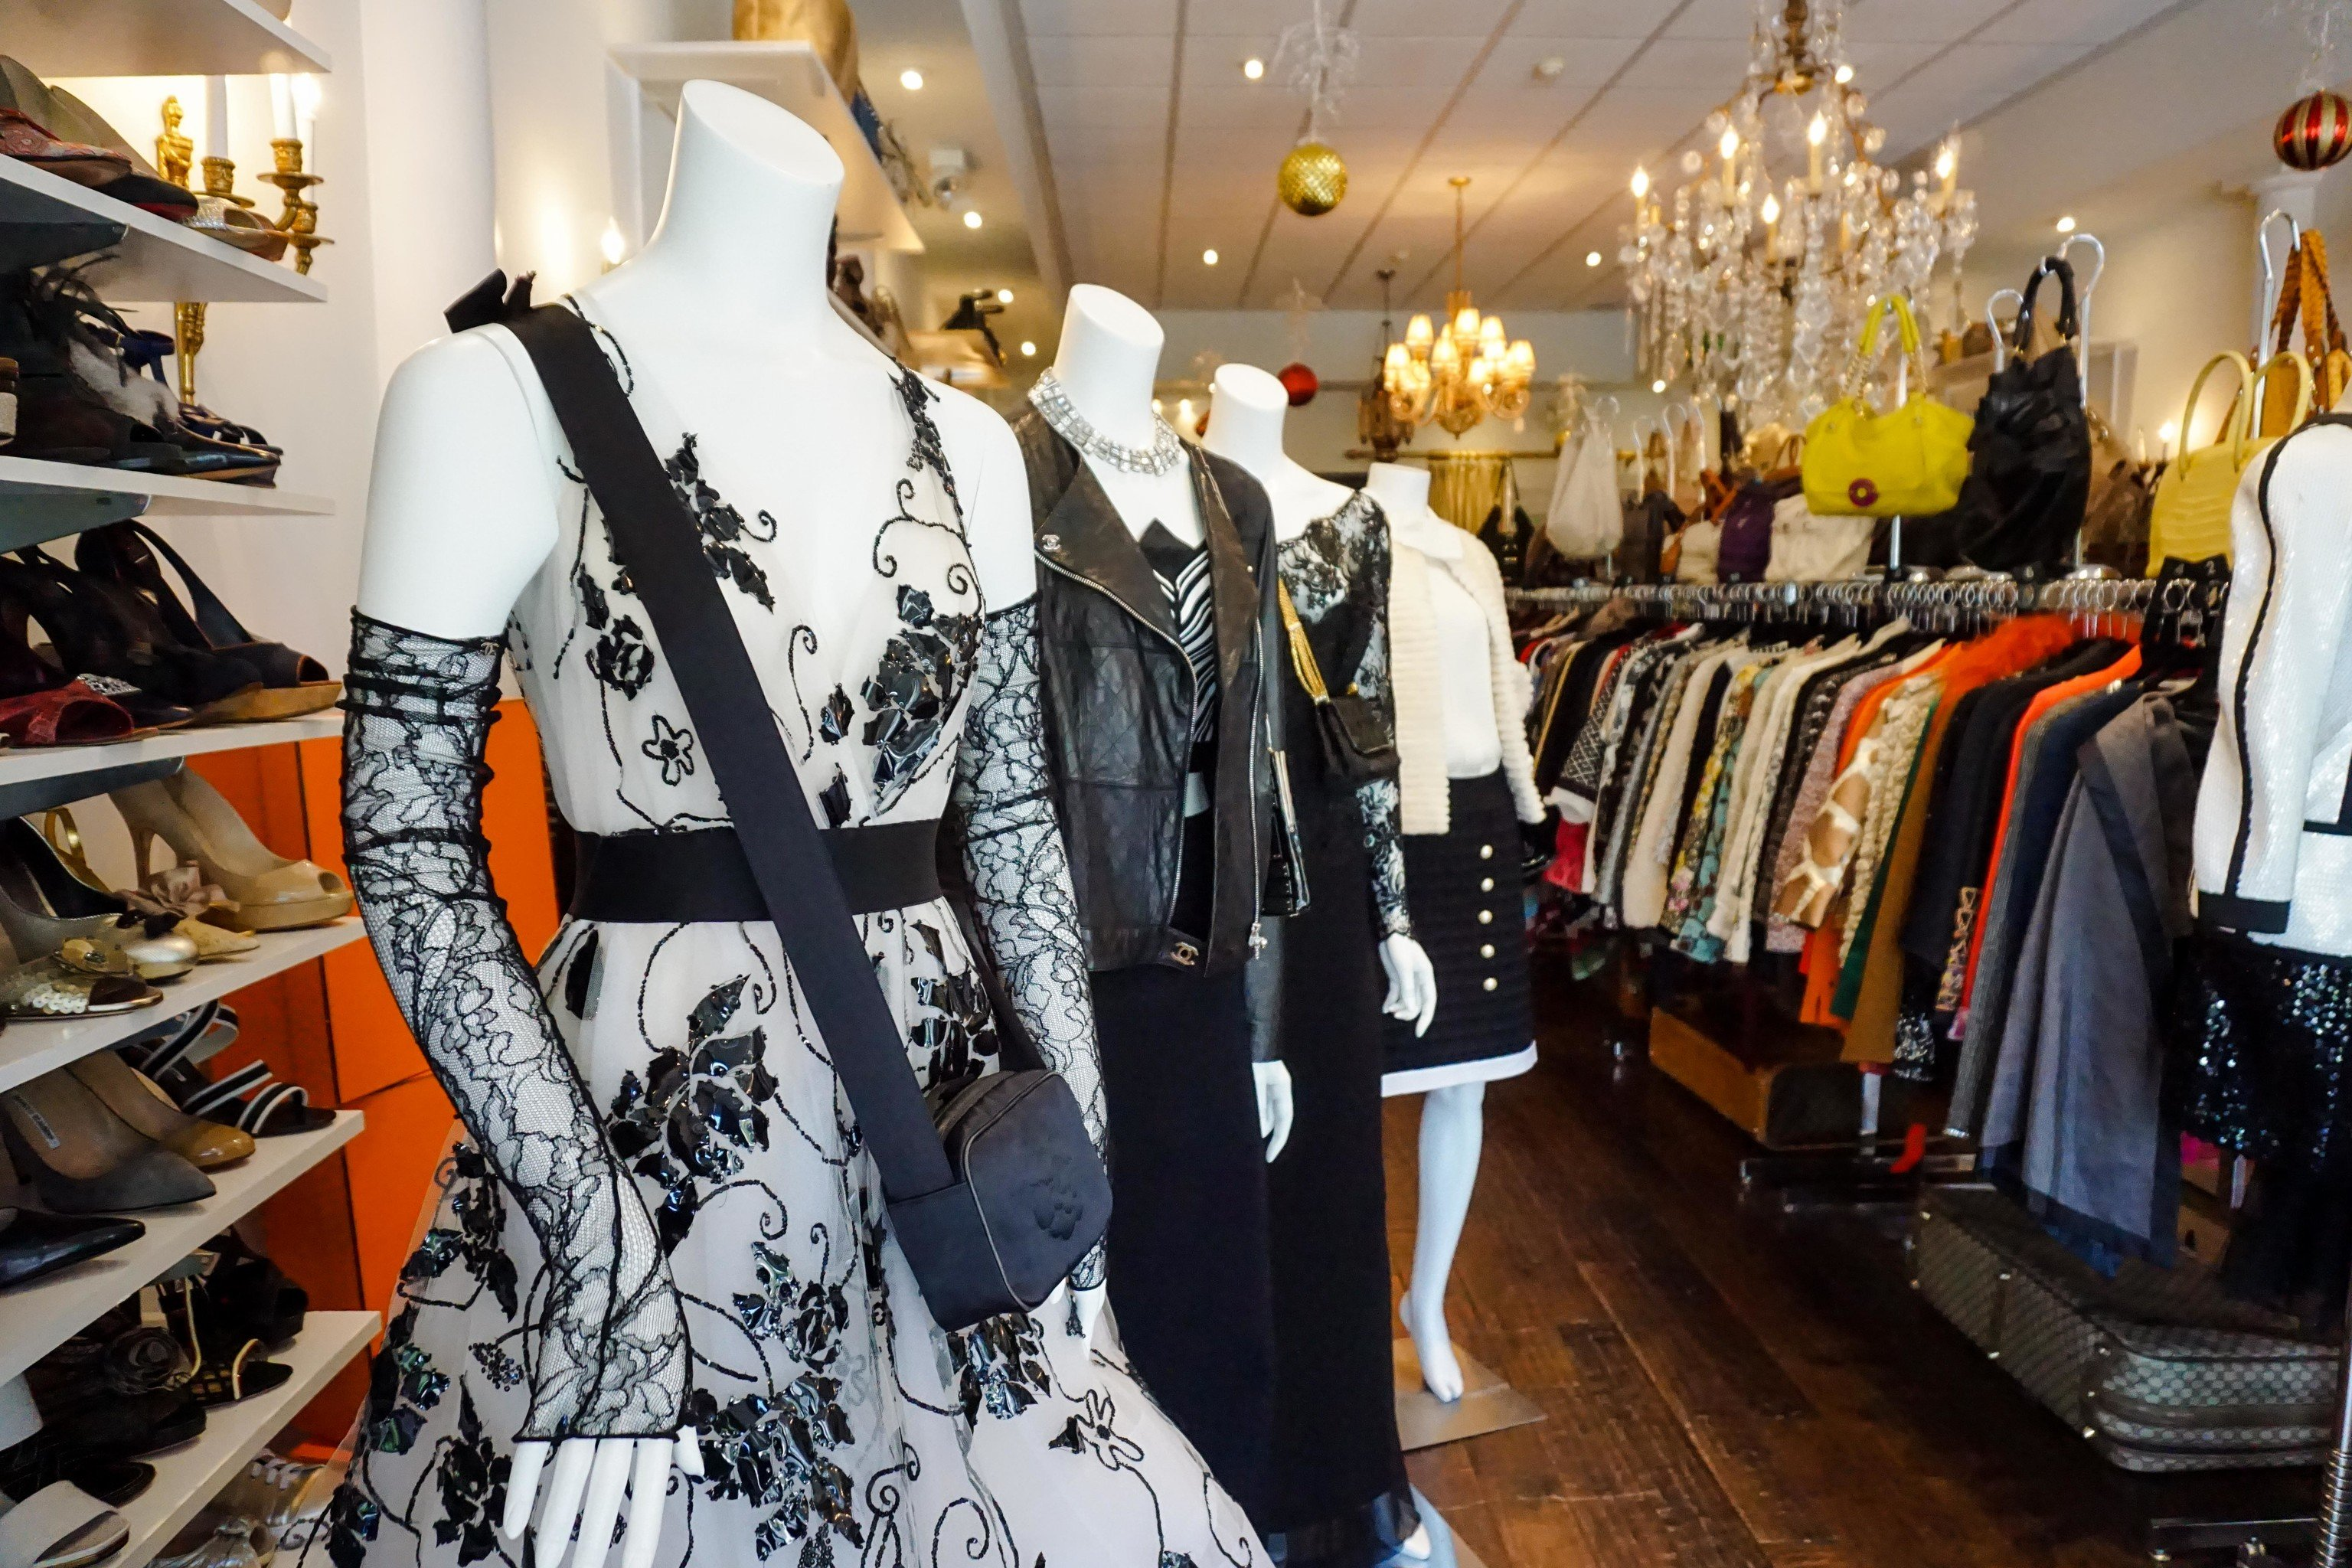 Travel Shop indoor wall Boutique retail fashion outerwear wardrobe stylist shopping buyer fashion design clothes several cluttered